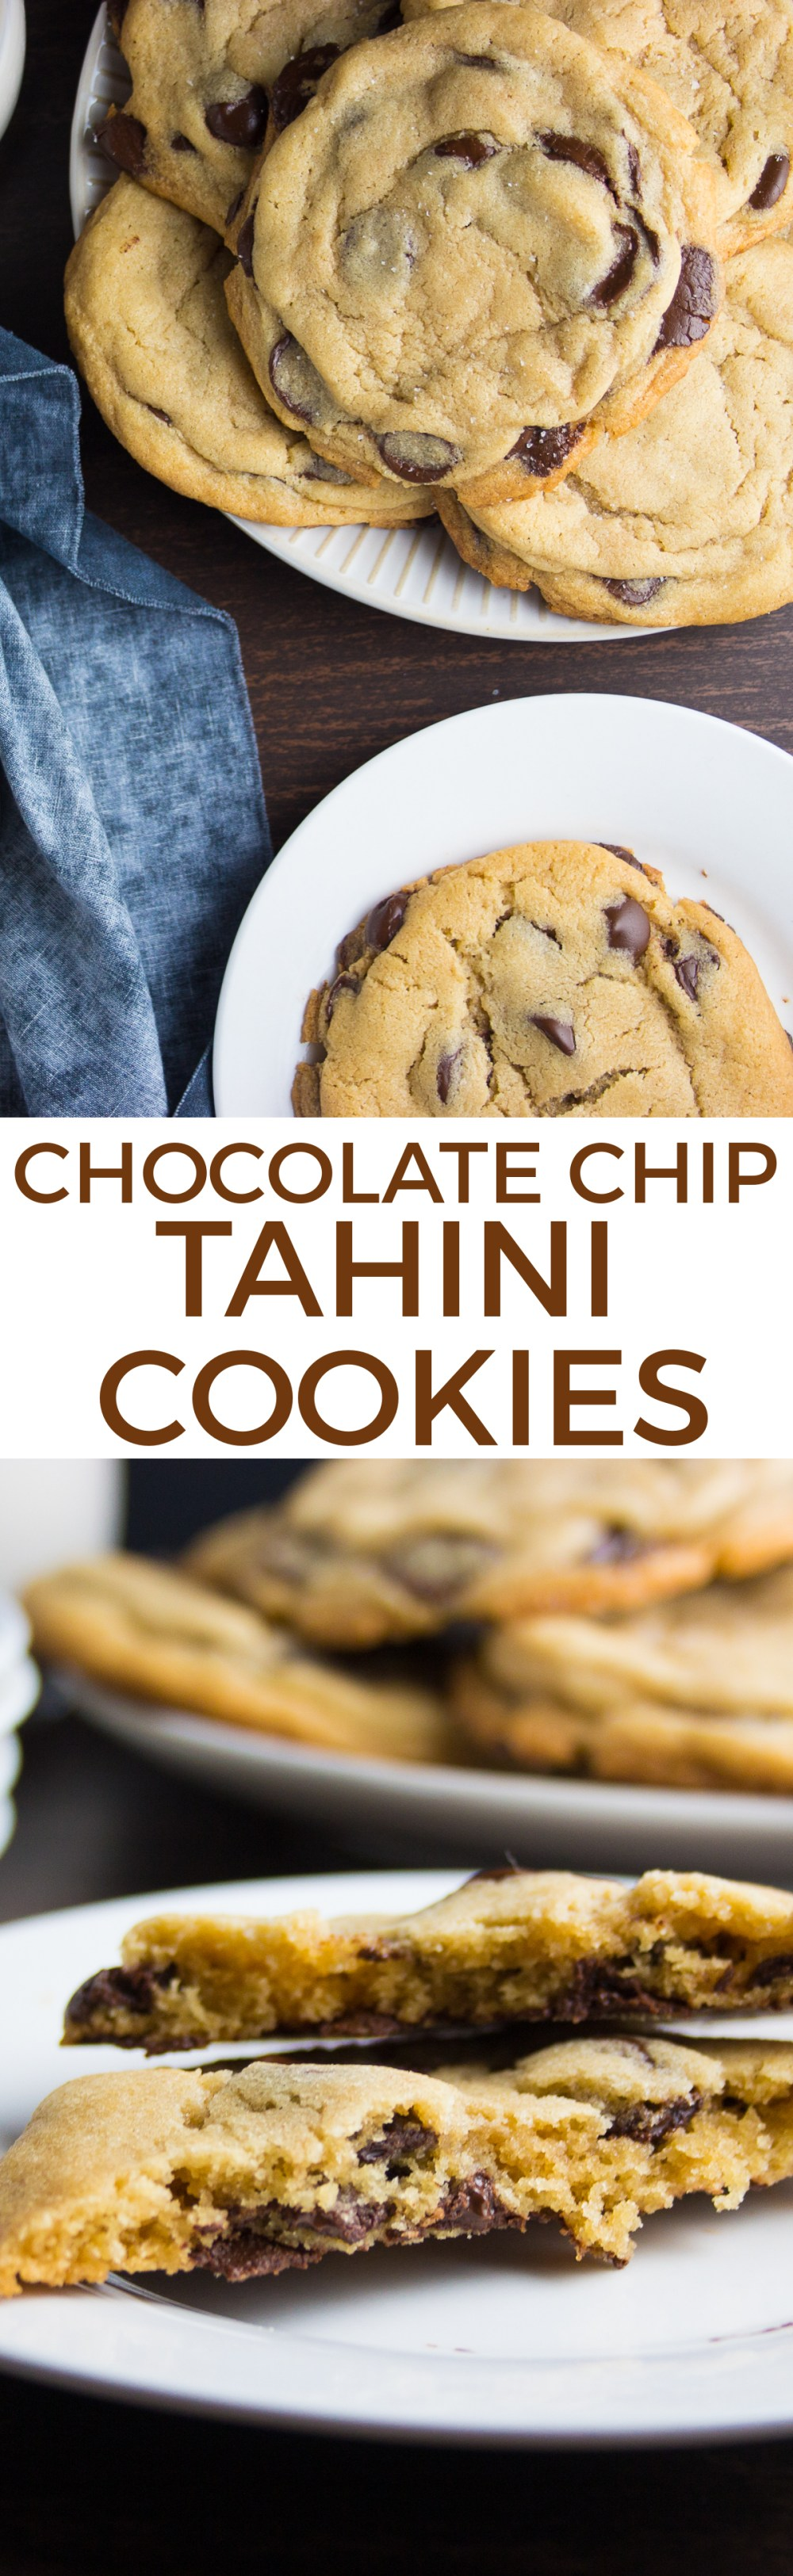 Chocolate Chip Tahini Cookies on www.inthiskitchen.com